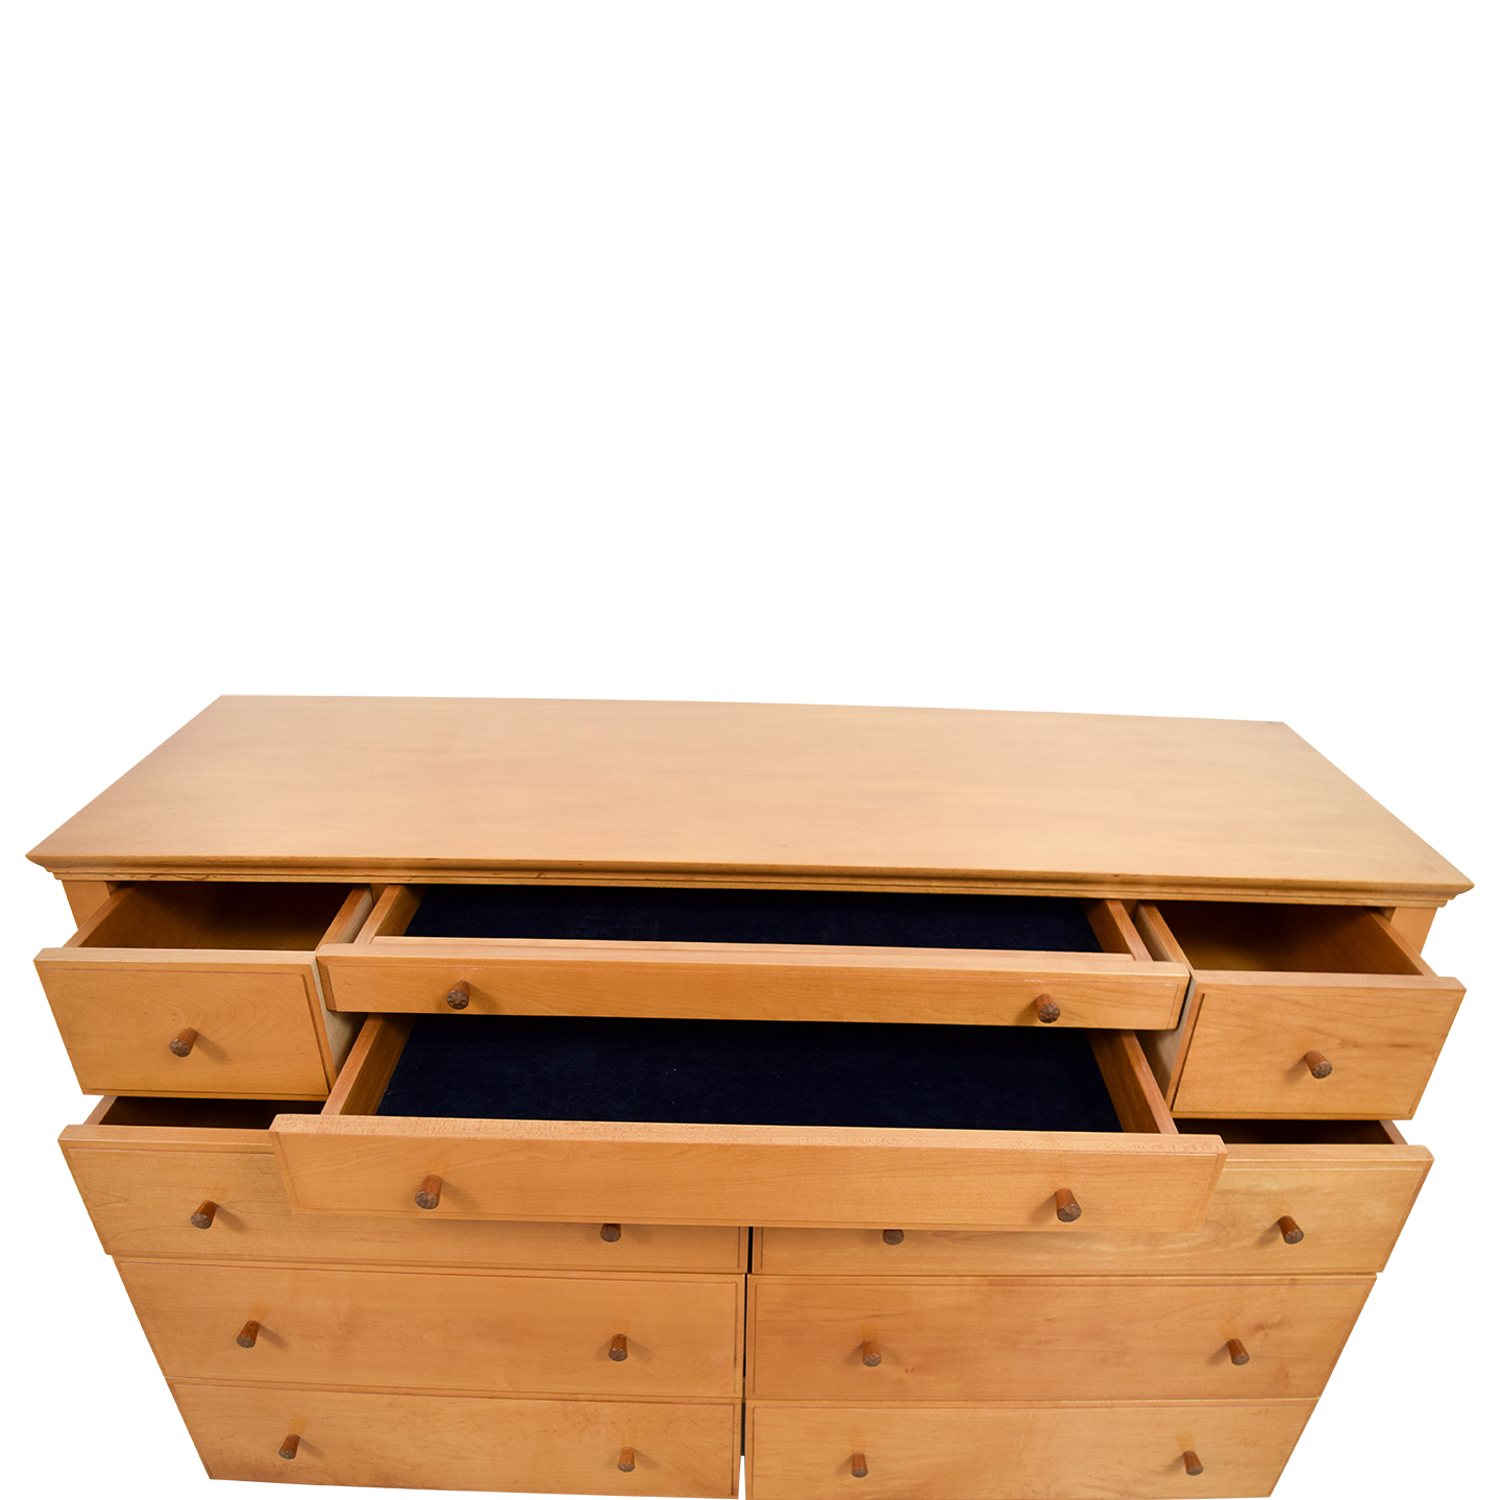 Charmant ... Shop Japanese Ten Drawer Wood Dresser Storage